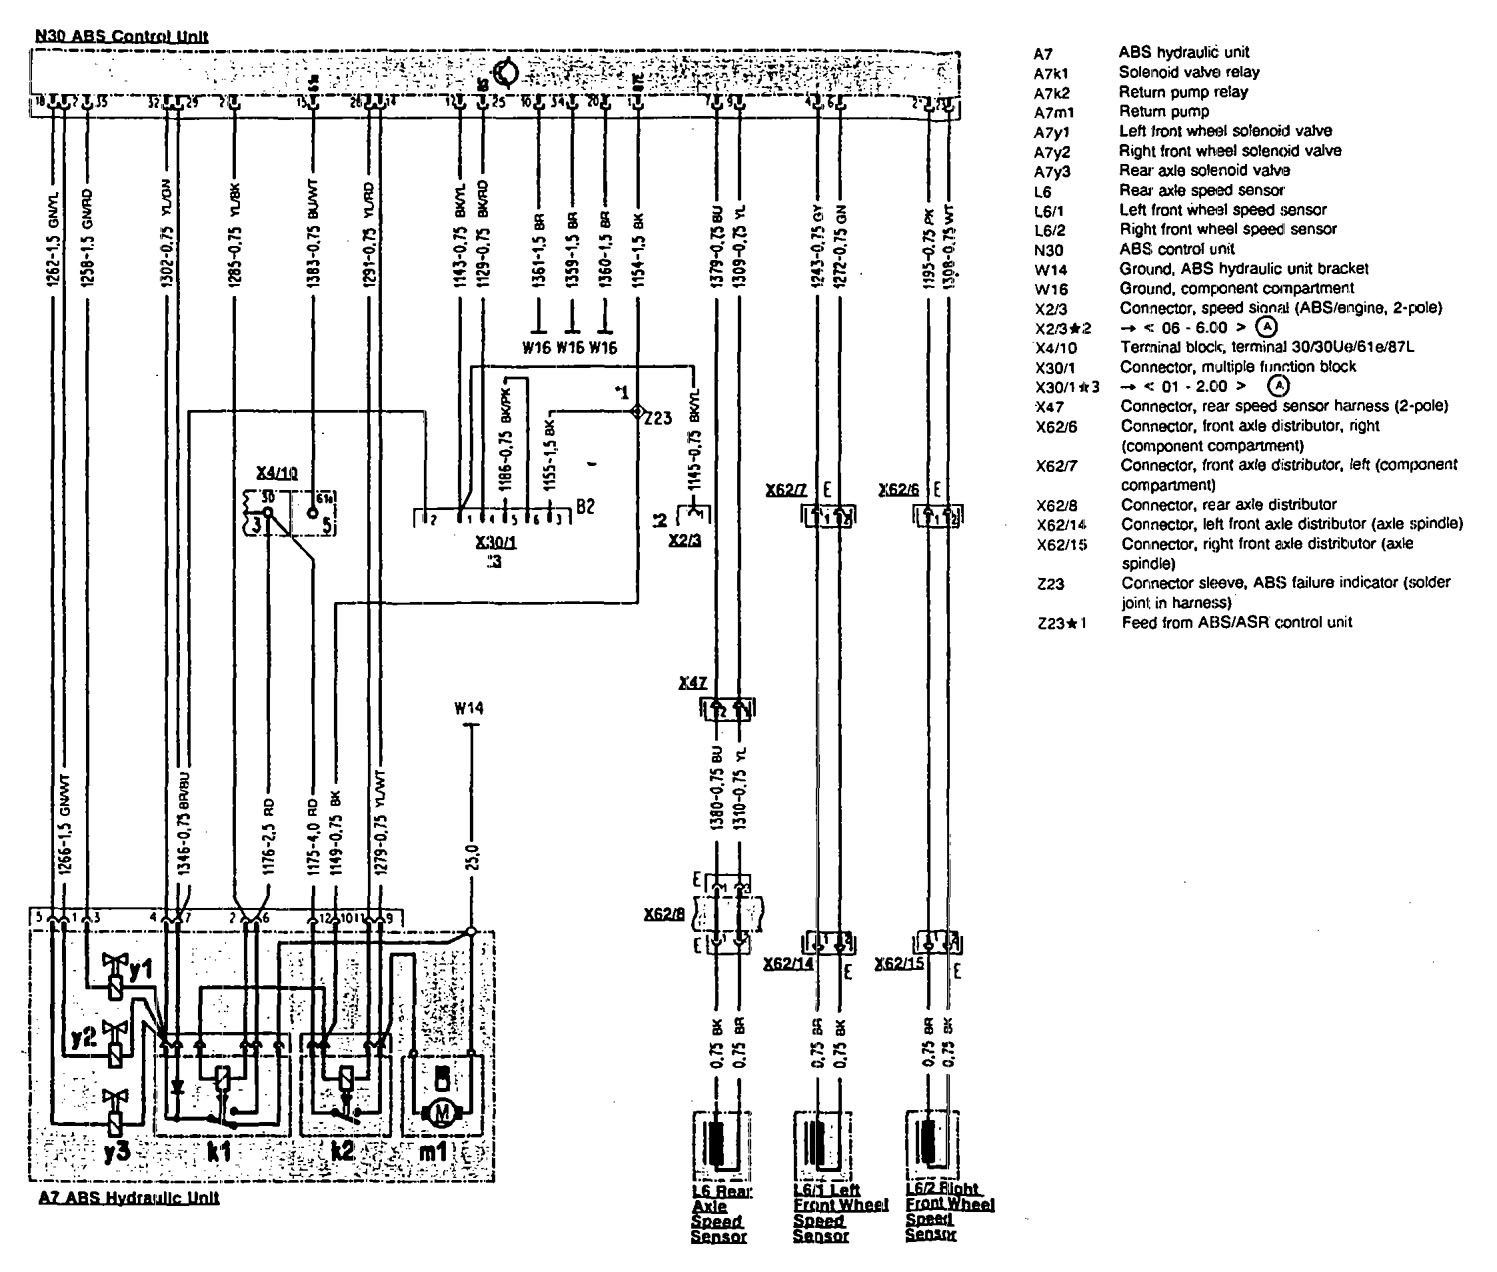 Mercedes Abs Wiring Diagram : Mercedes abs wiring diagram smart diagrams